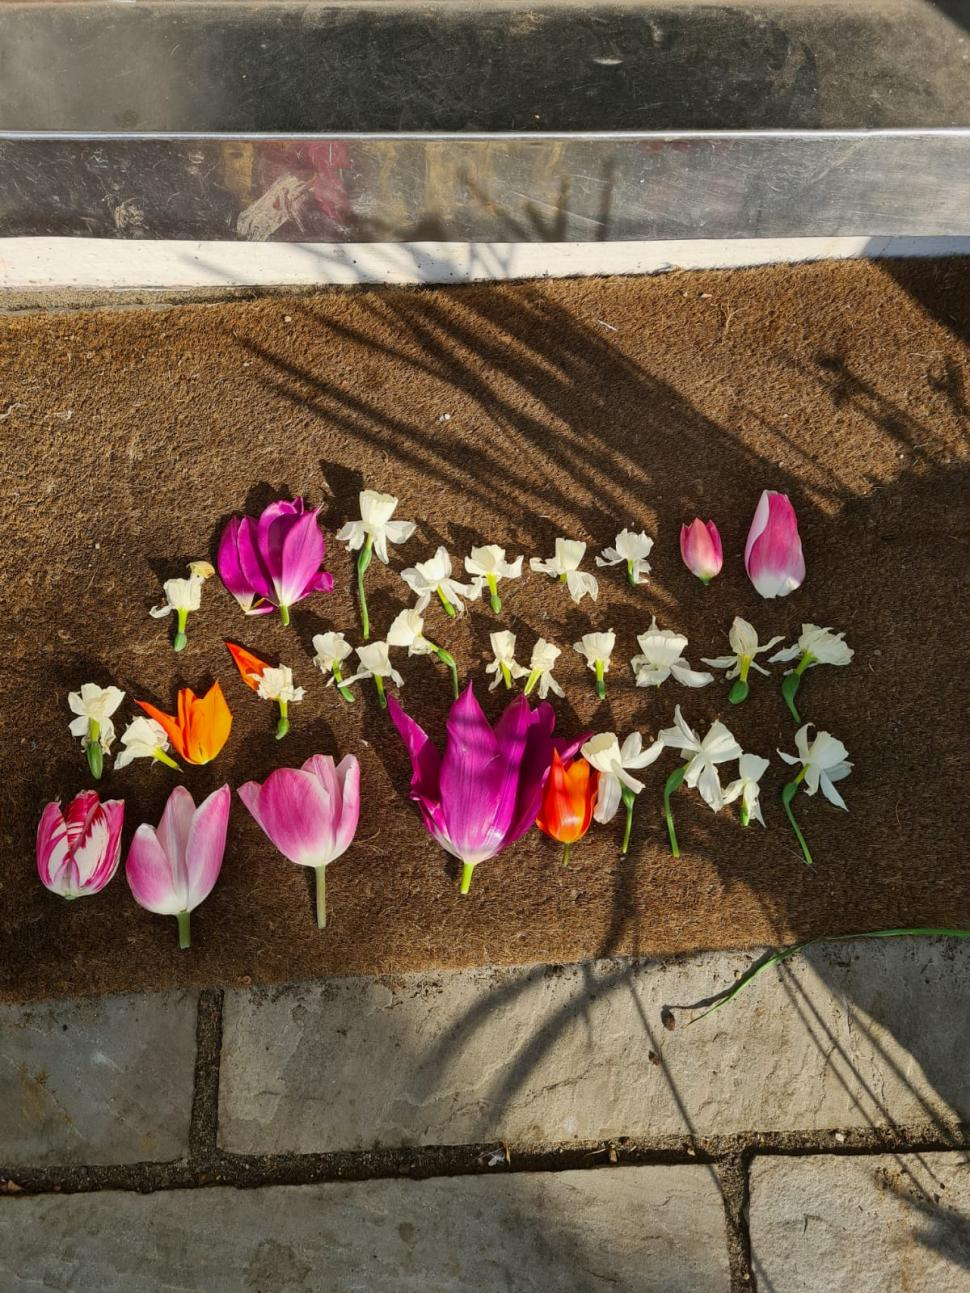 Safe cycling campaigner has her flowers 'decapitated'